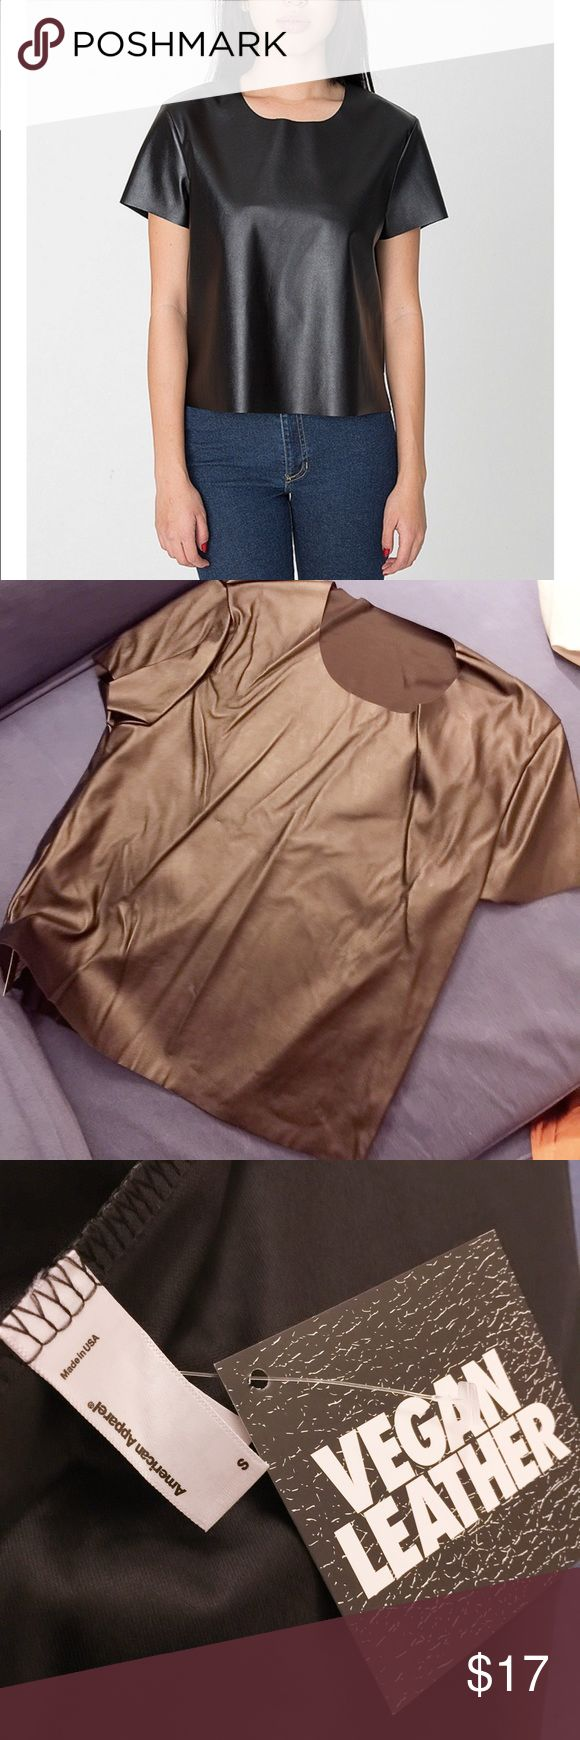 American Apparel vegan leather T-Shirt Brand new, never worn. Size: S. Color: Black. American Apparel Tops